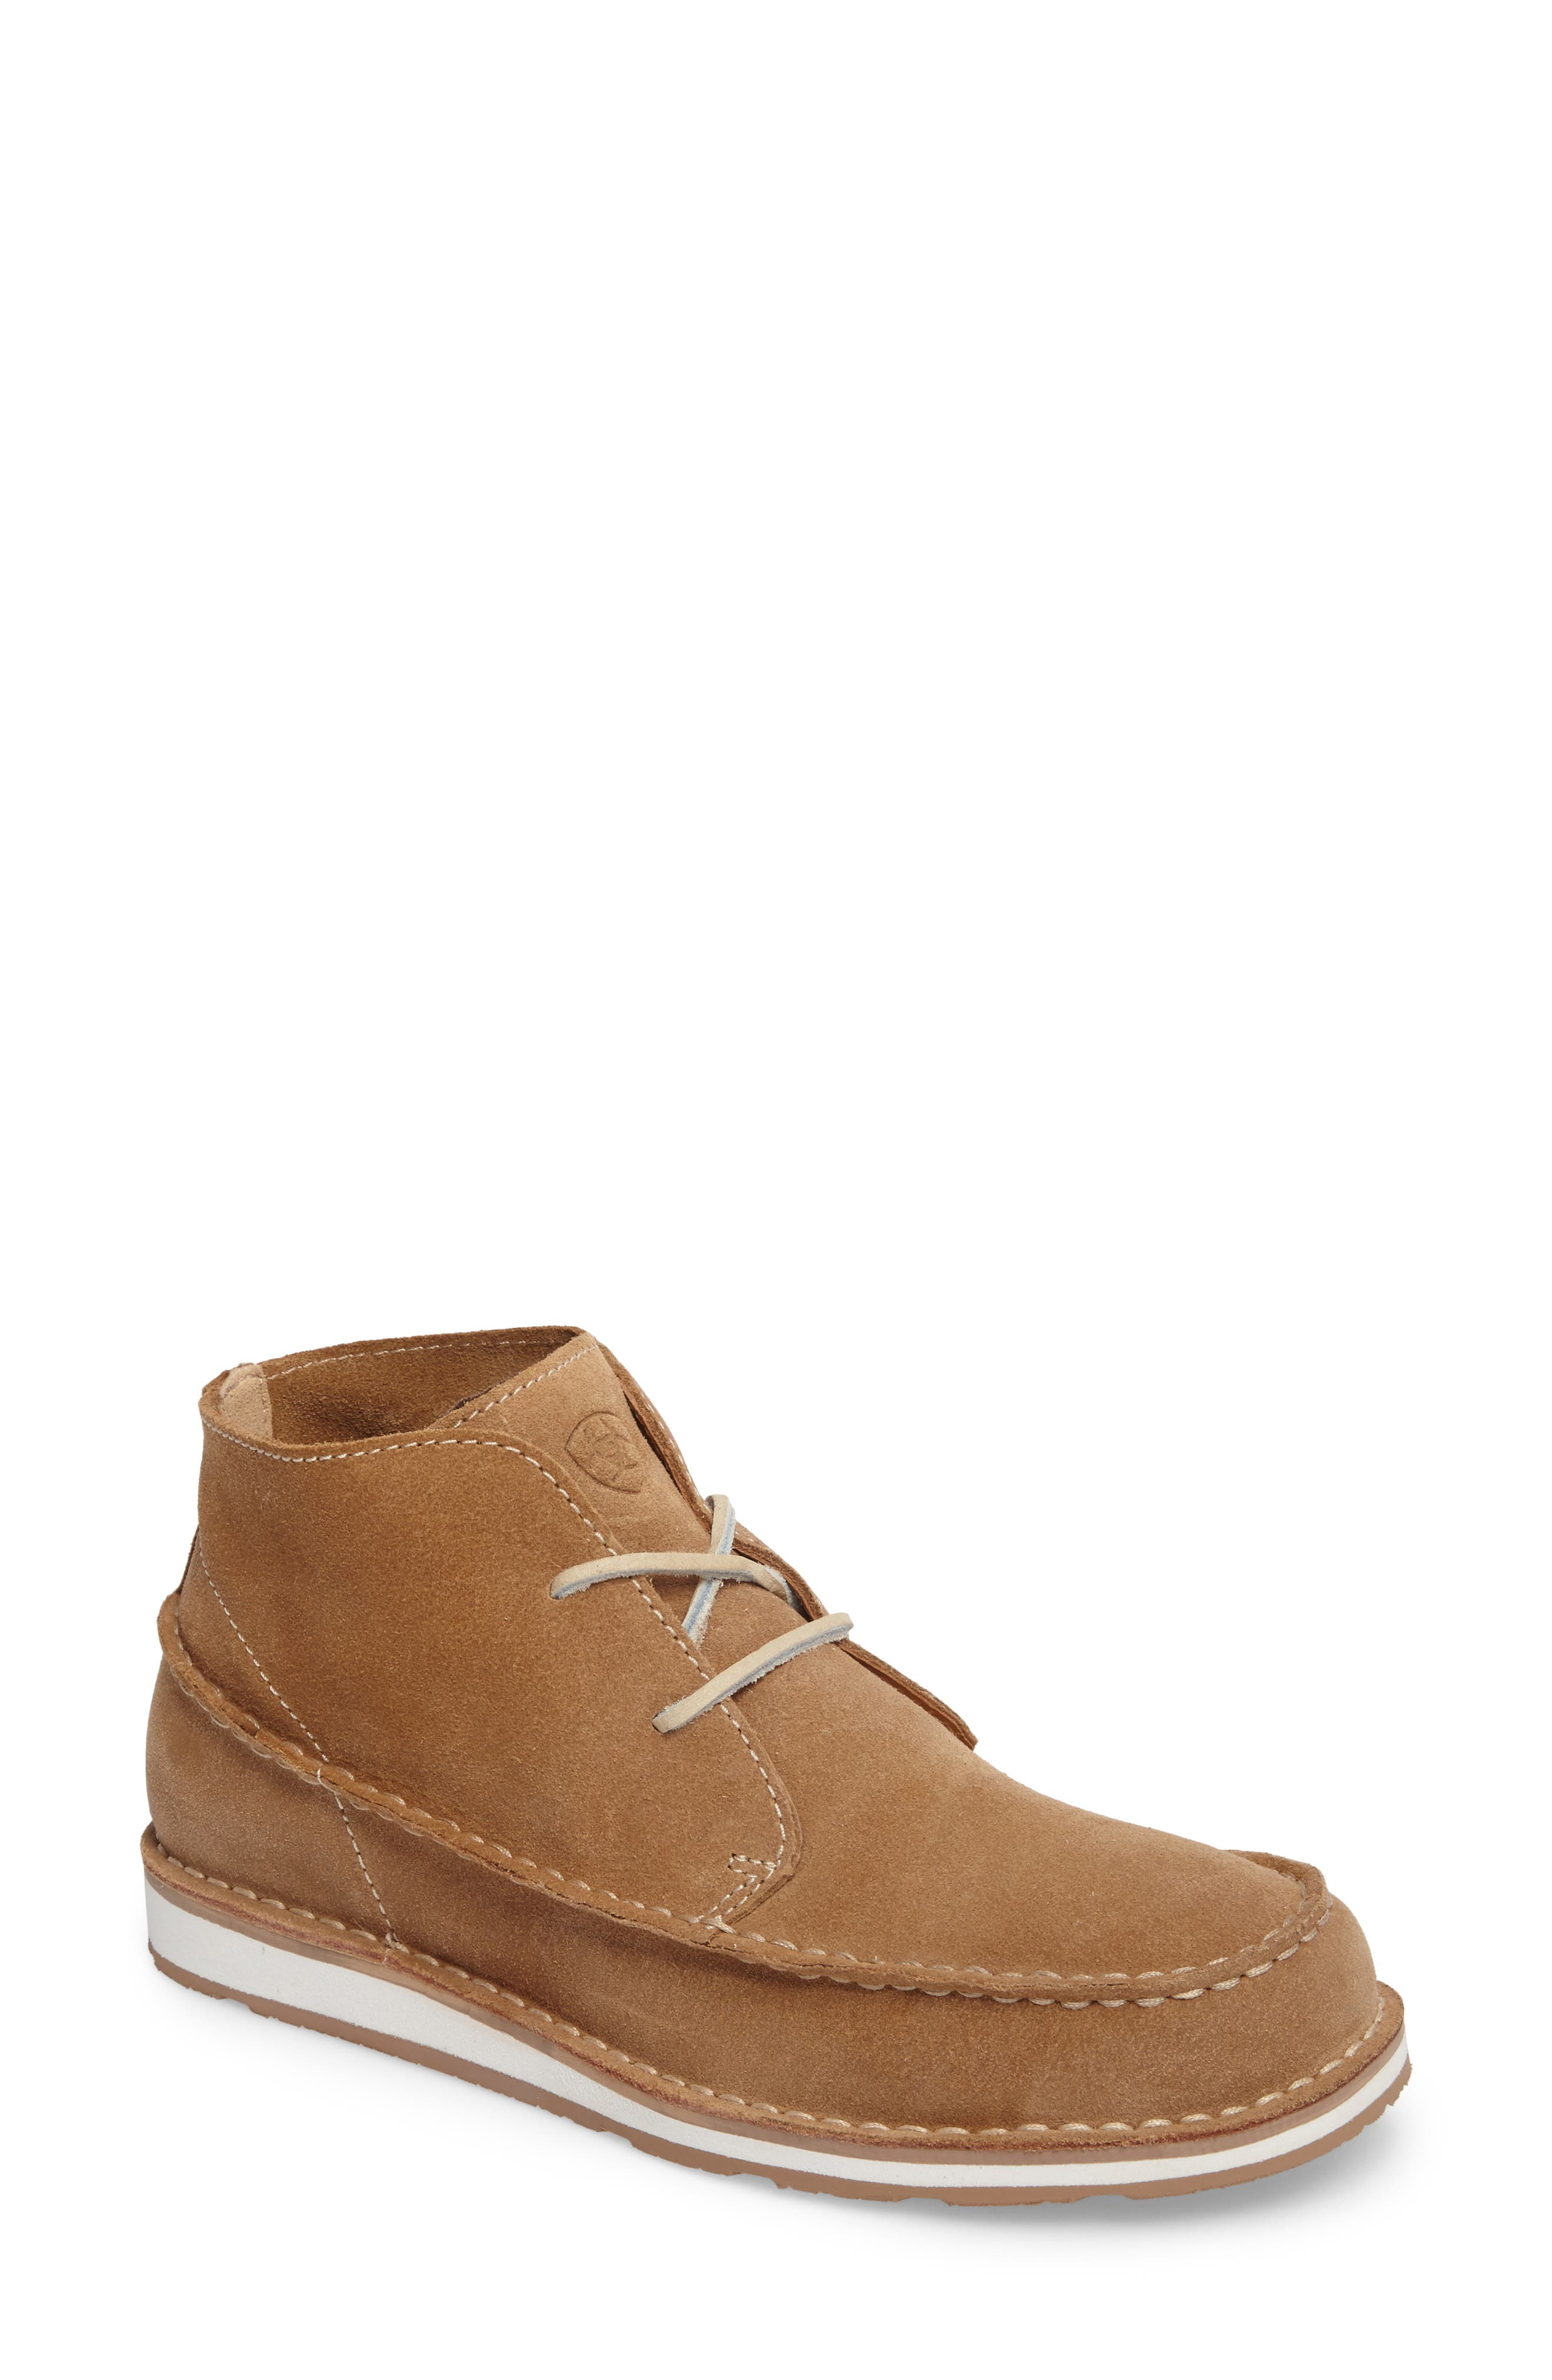 Cruiser Chukka Boot,                         Main,                         color, Lace Dirty Taupe Suede